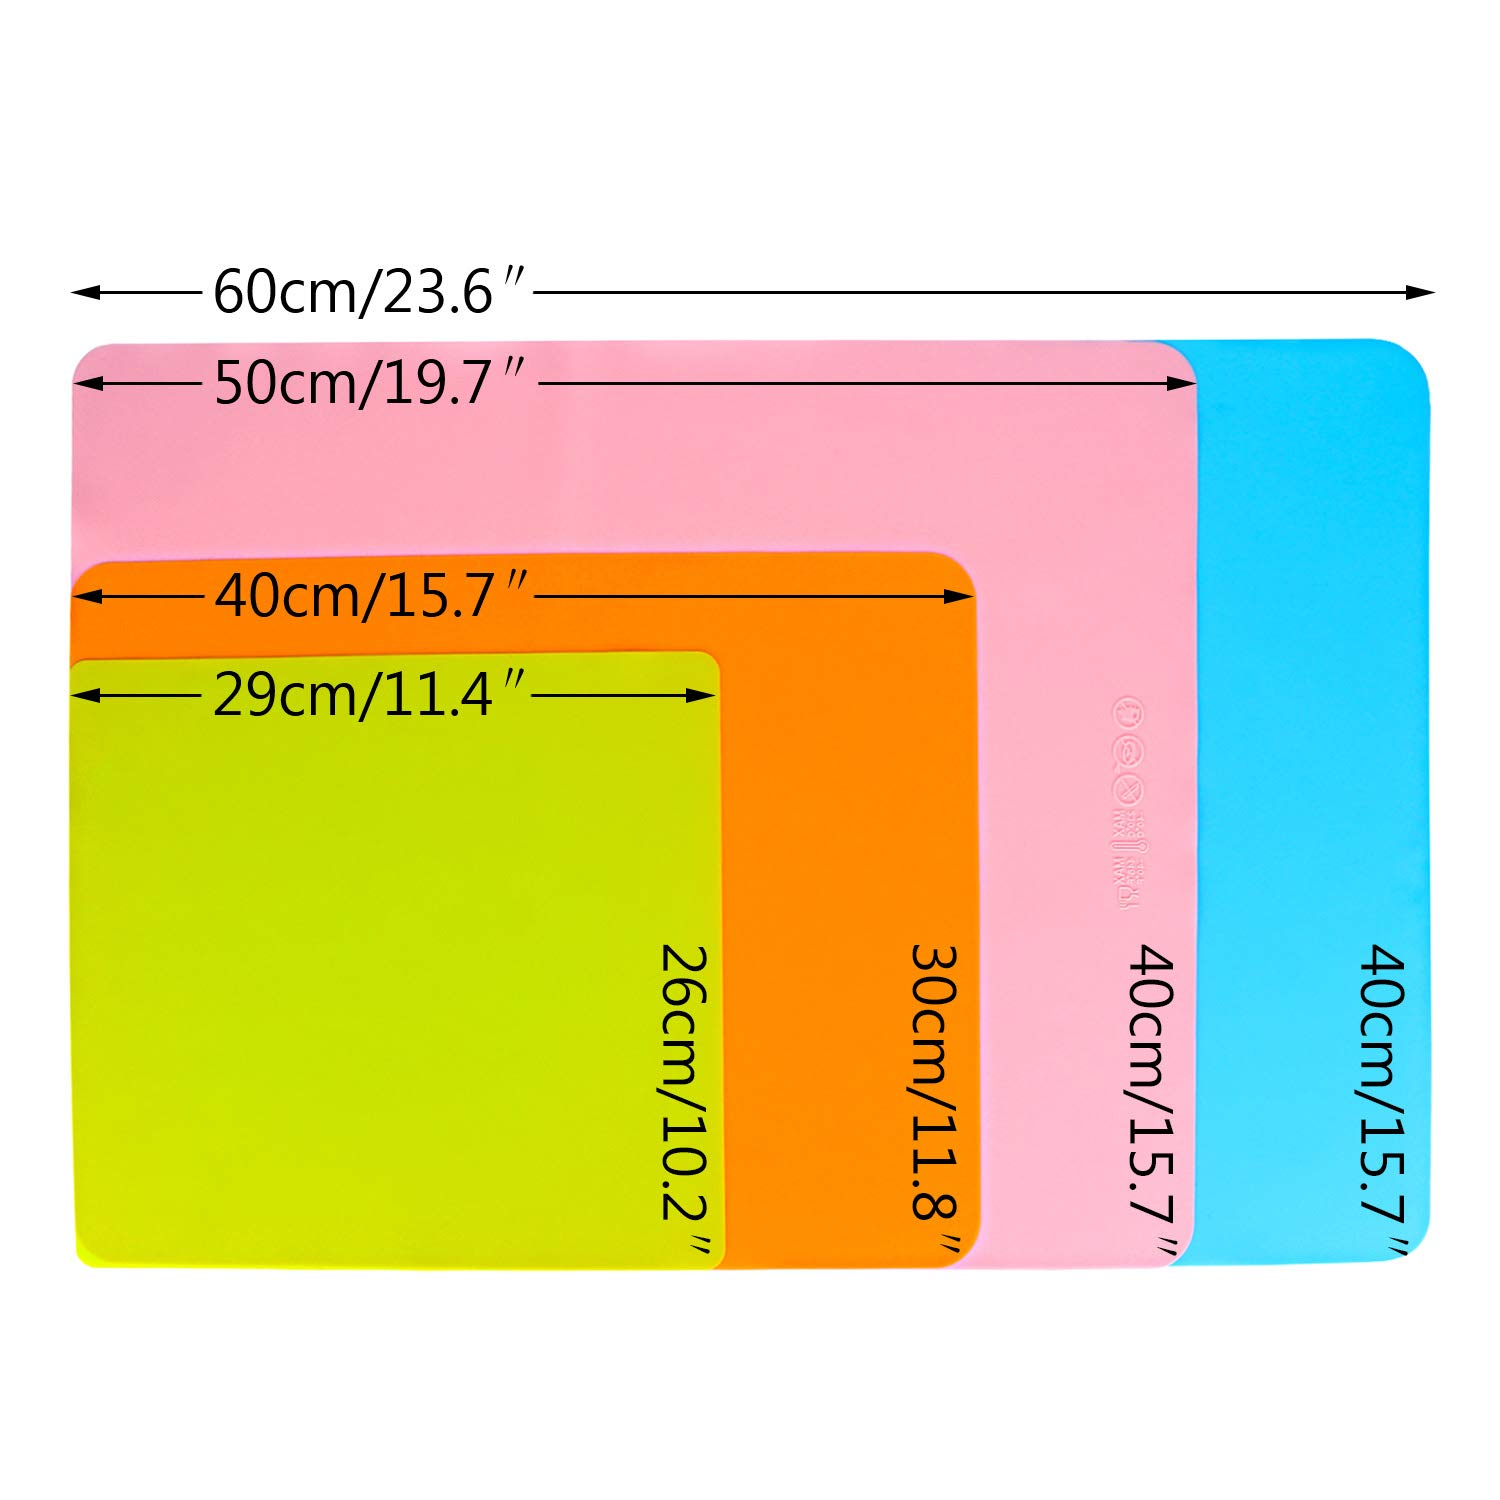 Blue /& Pink /& Green Set of 3 Waterproof Nonstick Heat-Resistant Large Silicone Mats 15.7 x 19.7 inchs Multipurpose Sheets for Crafts Jewelry Casting Moulds Countertop Protector Placemat